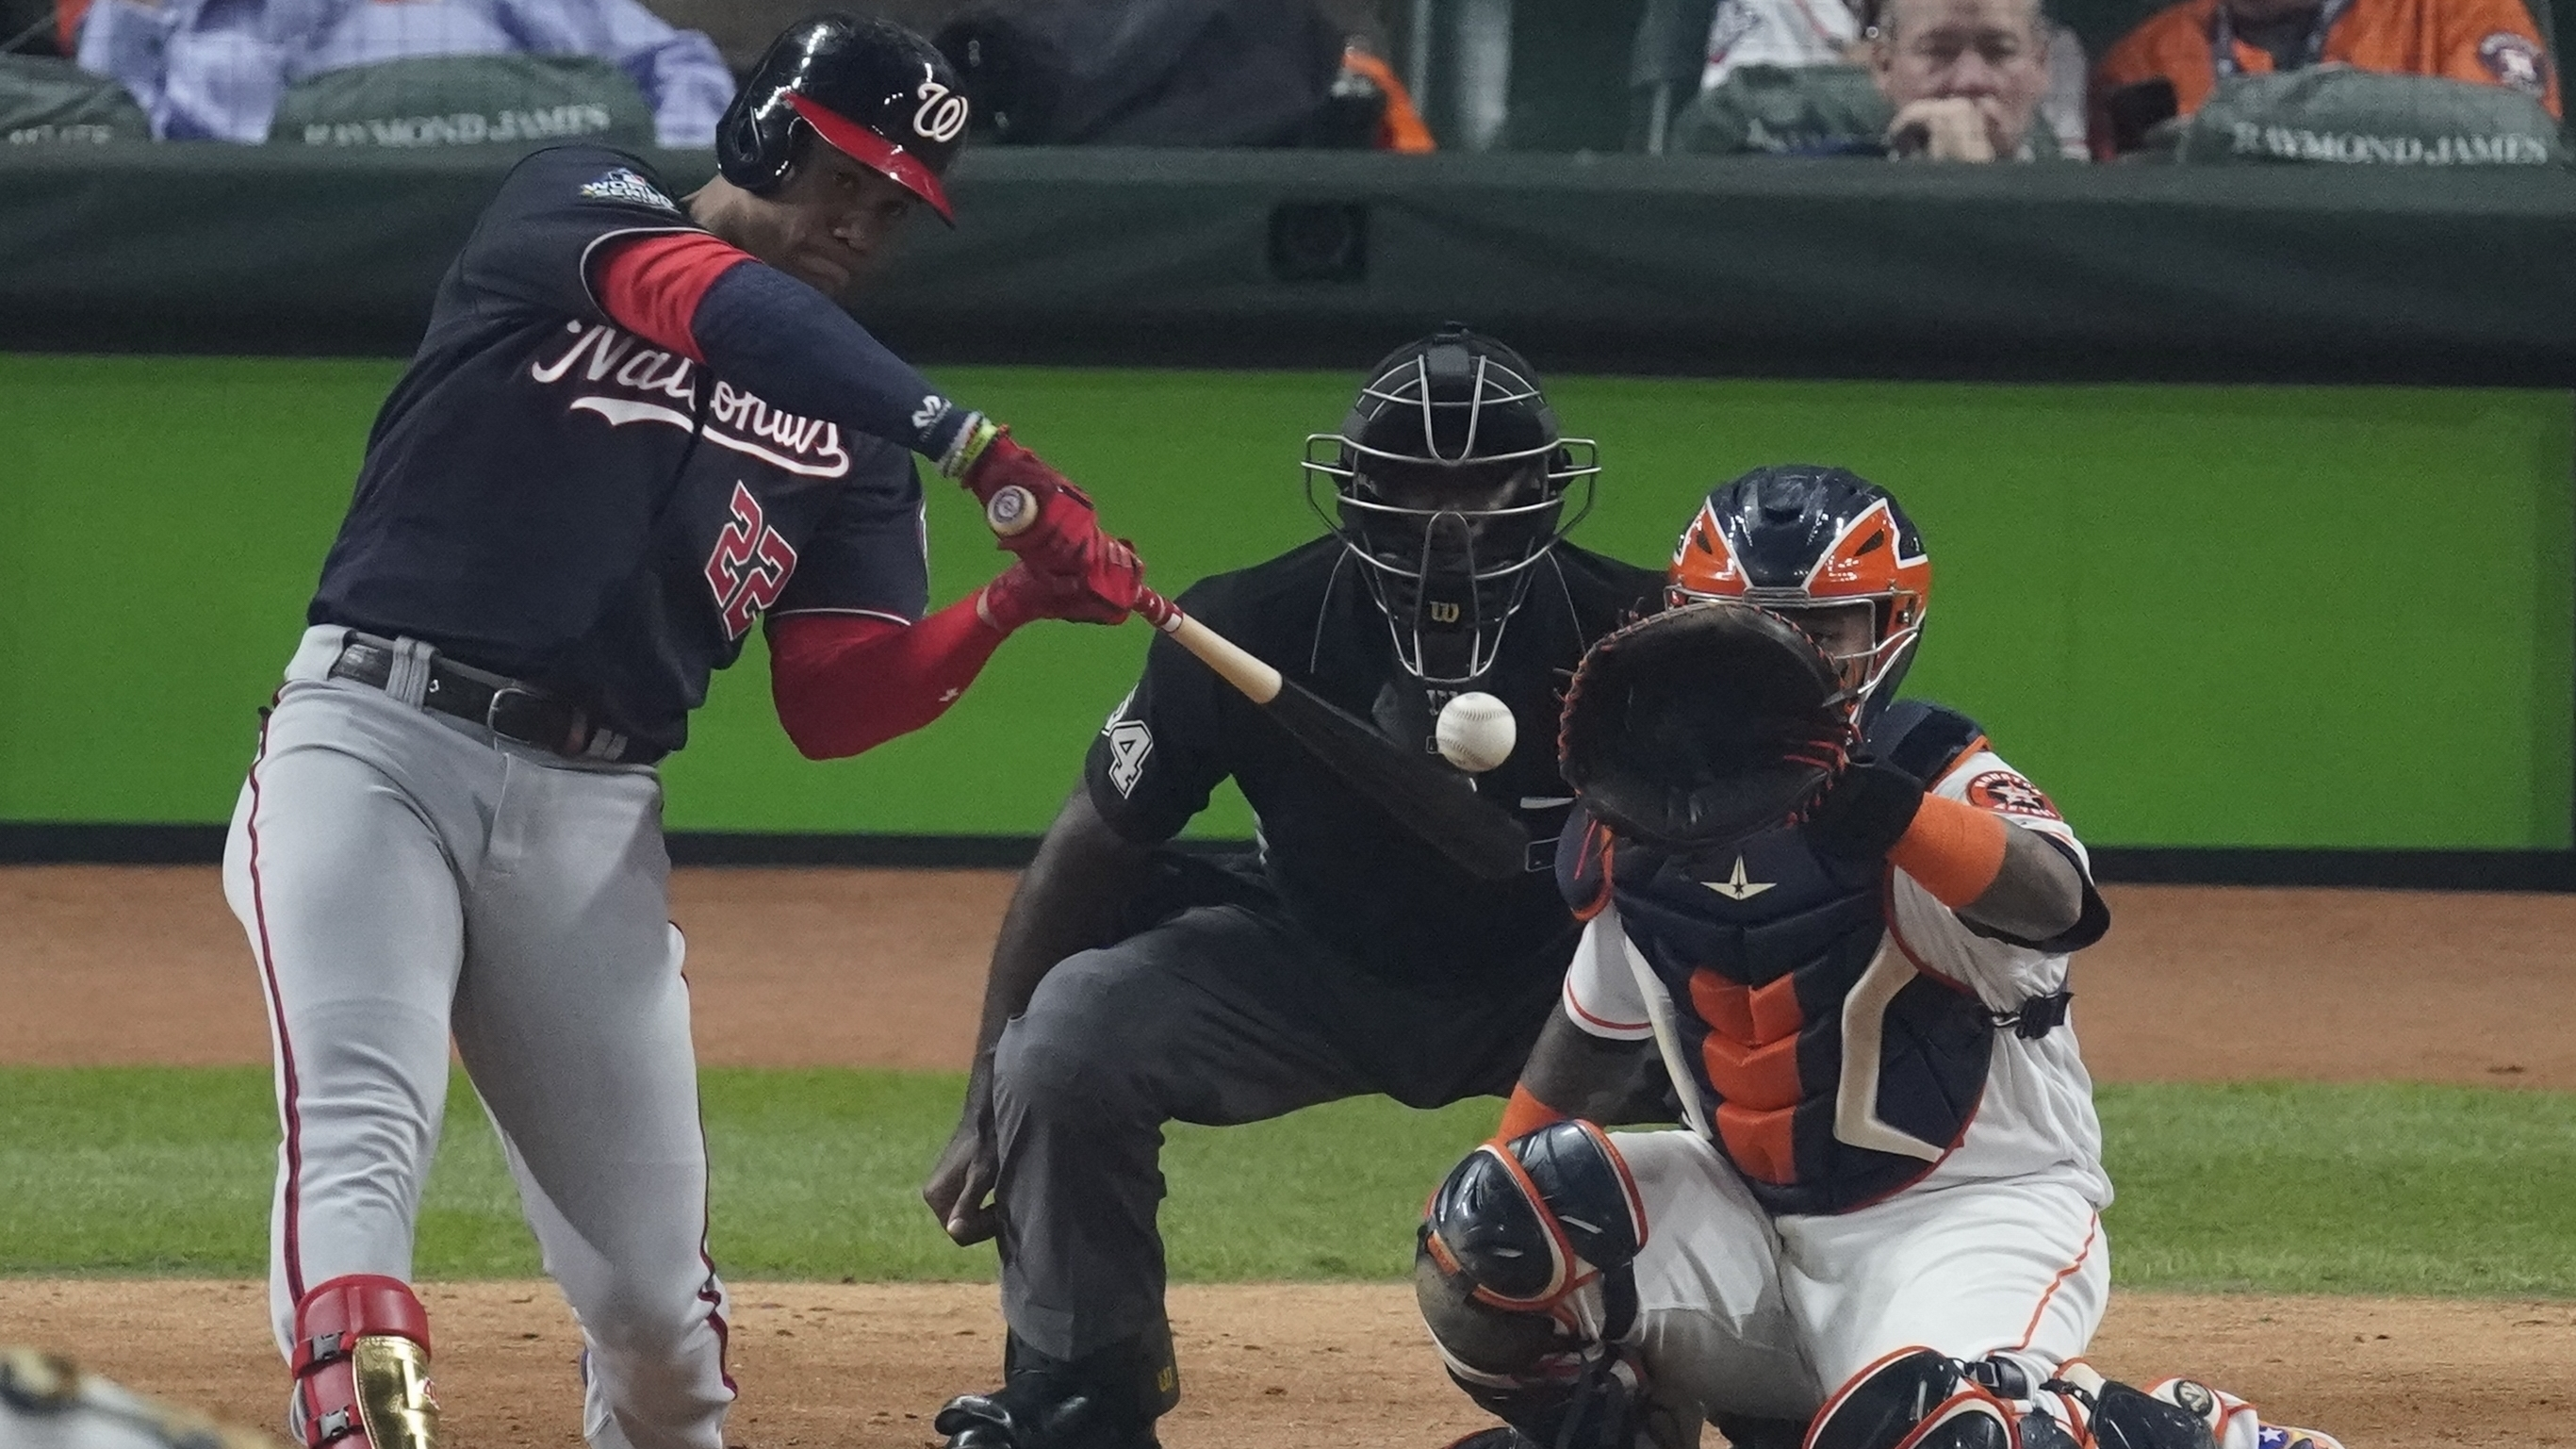 Astros And Nationals Tied 2-2 In Game 1 Of World Series